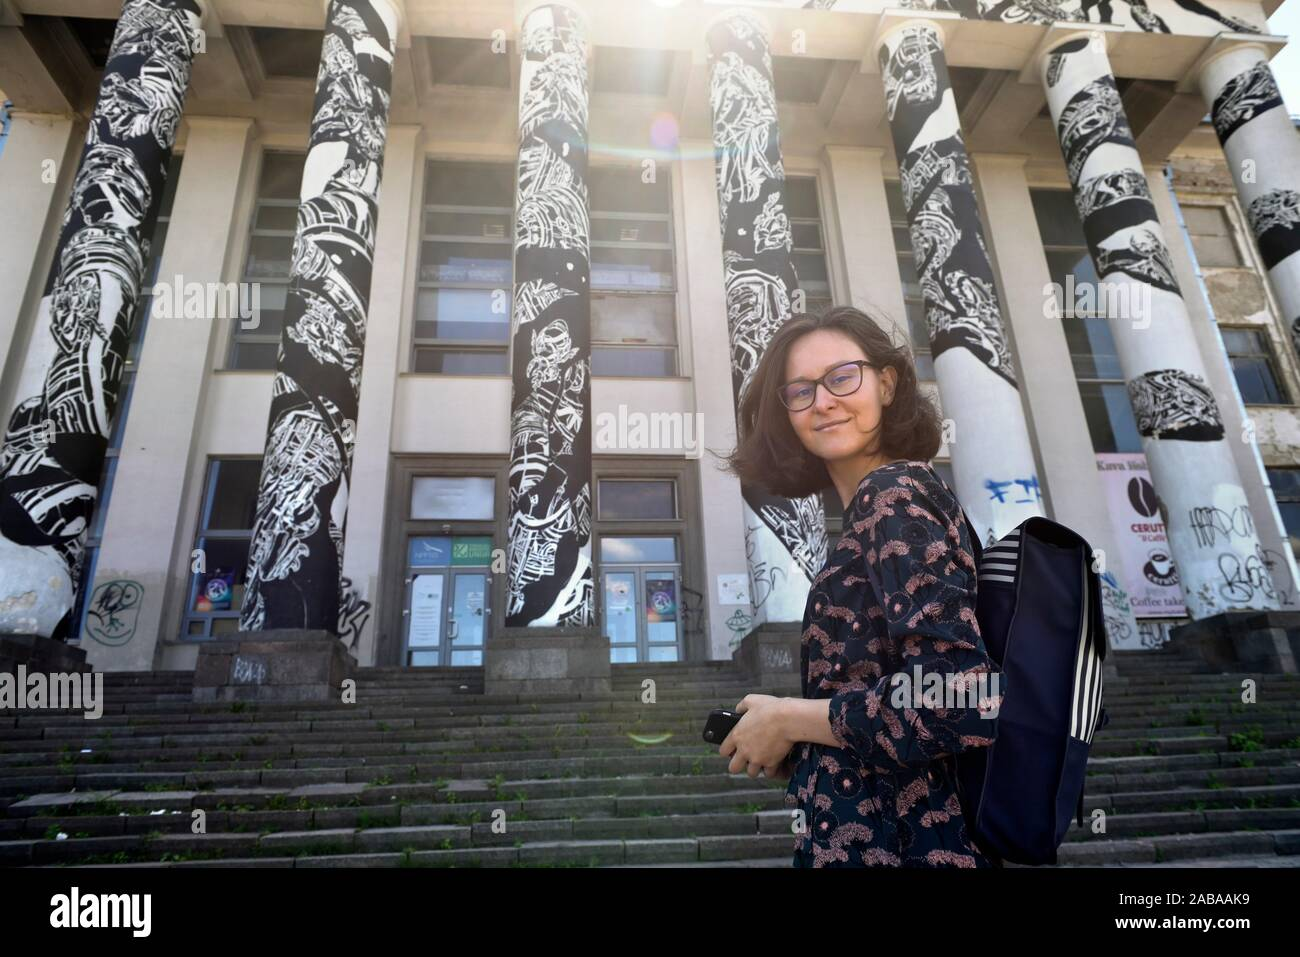 young woman posing in front of the columns of former disused palace of the Soviet period on Tauras Hill, Vilnius, Lithuania, Europe. Stock Photo